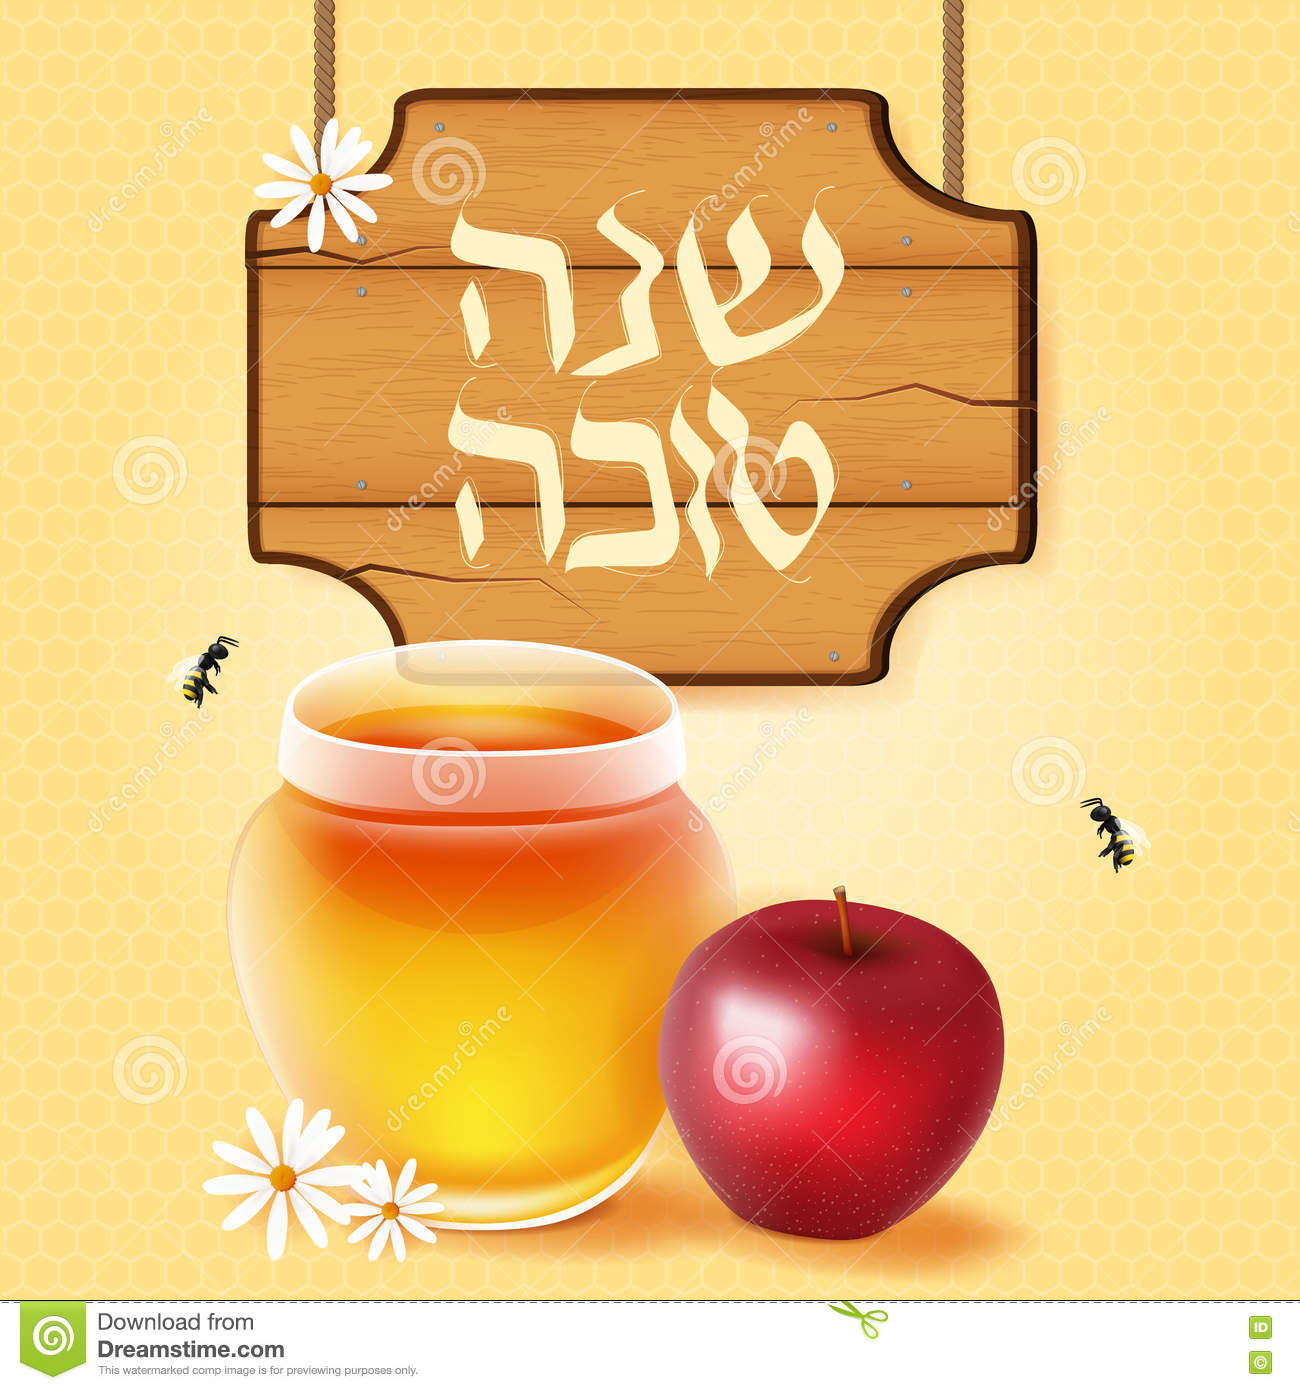 Hand Written Hebrew Lettering With Text Shana Tova And Traditional Apple And Honey Stock Vector